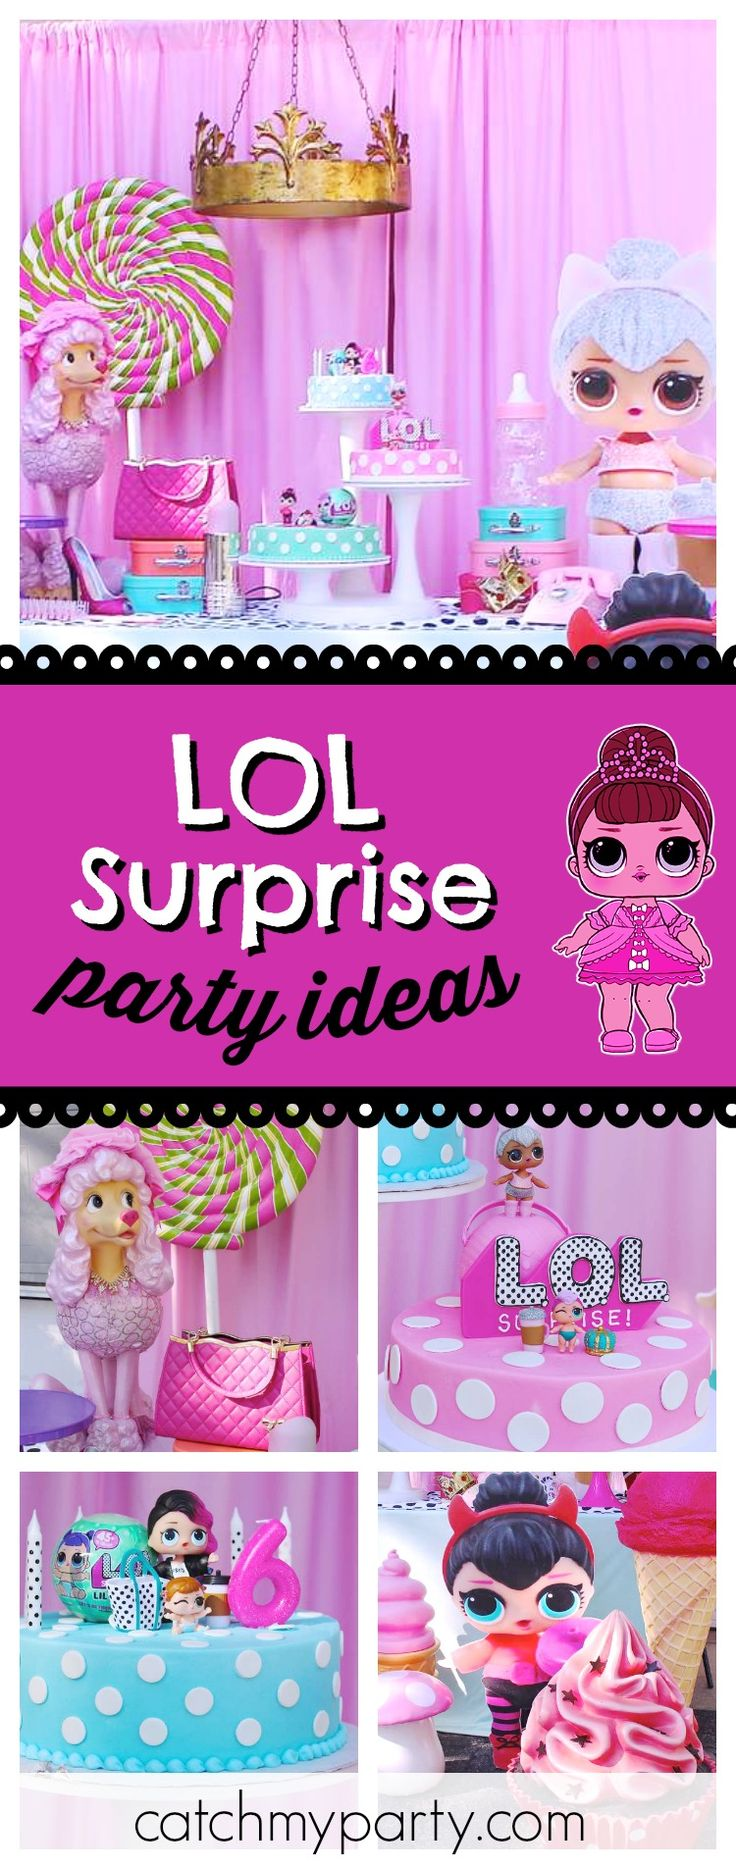 year birthday invitatiowordingiindiastyle%0A Check out this awesome LOL Surprise dolls birthday party  The dessert table  and decor are